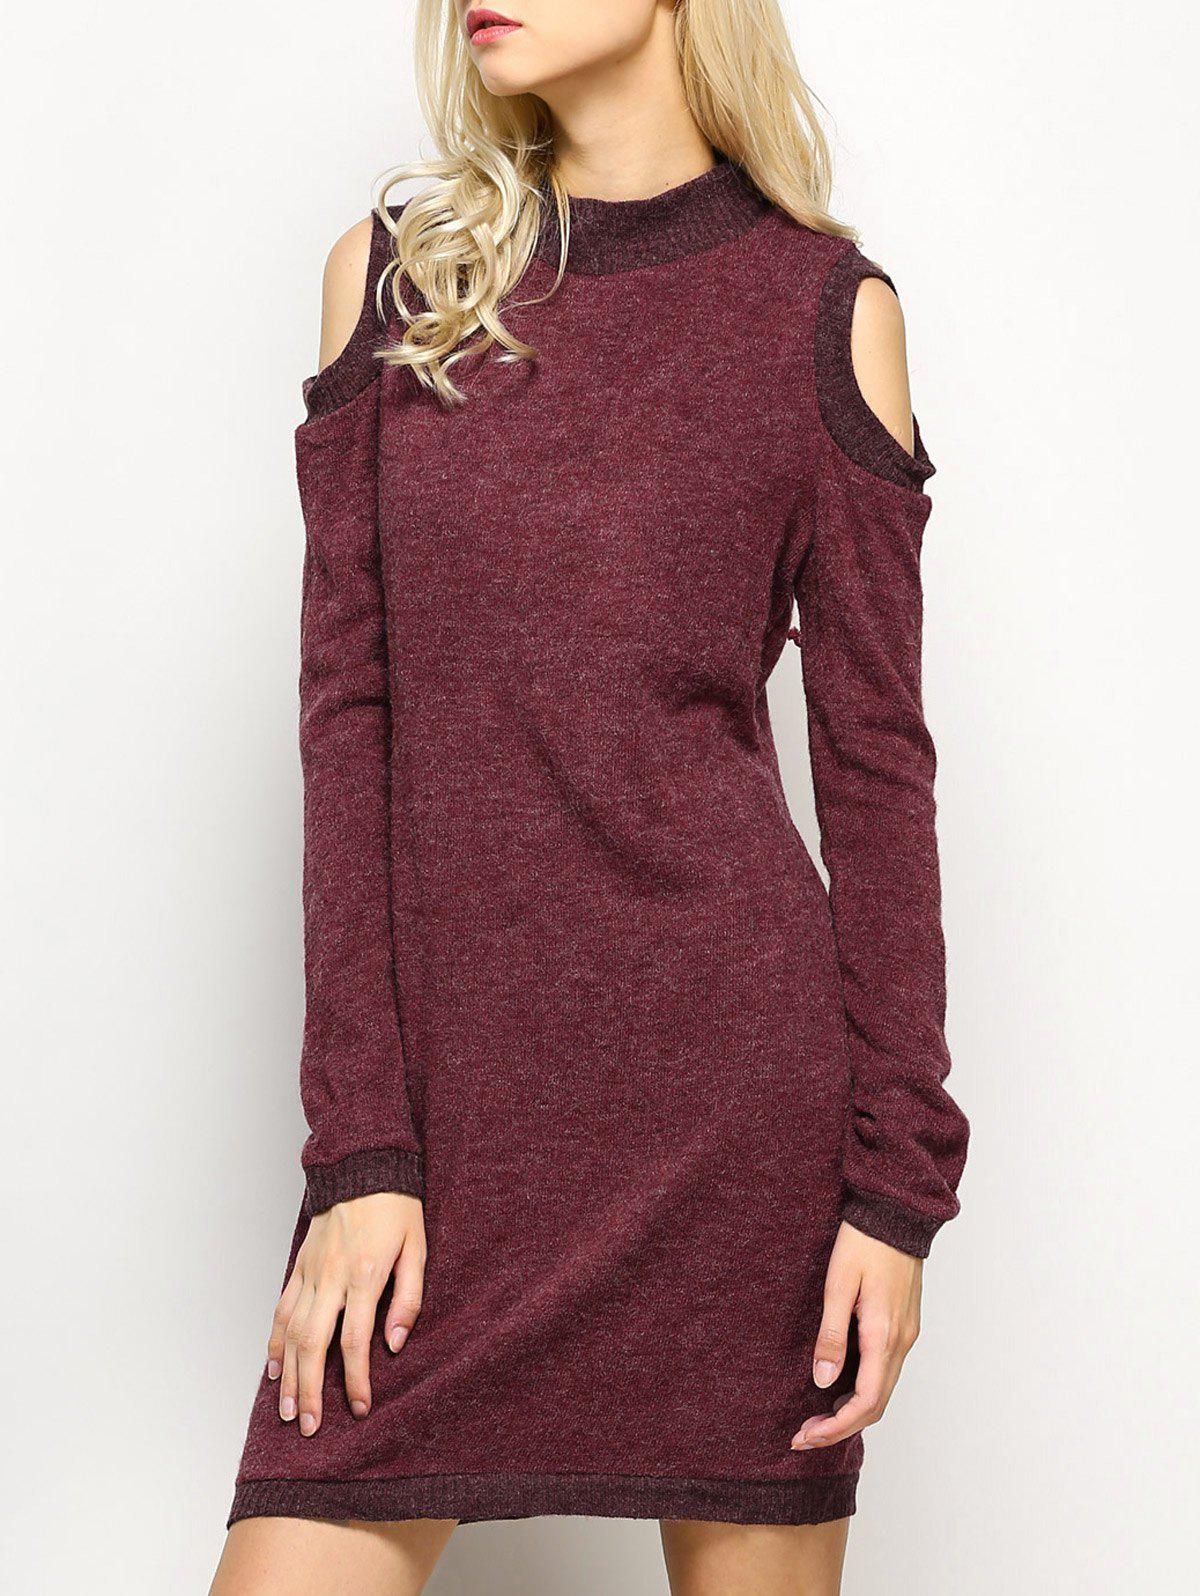 Long Sleeve Cold Shoulder High Neck Bodycon Dress - CLARET M